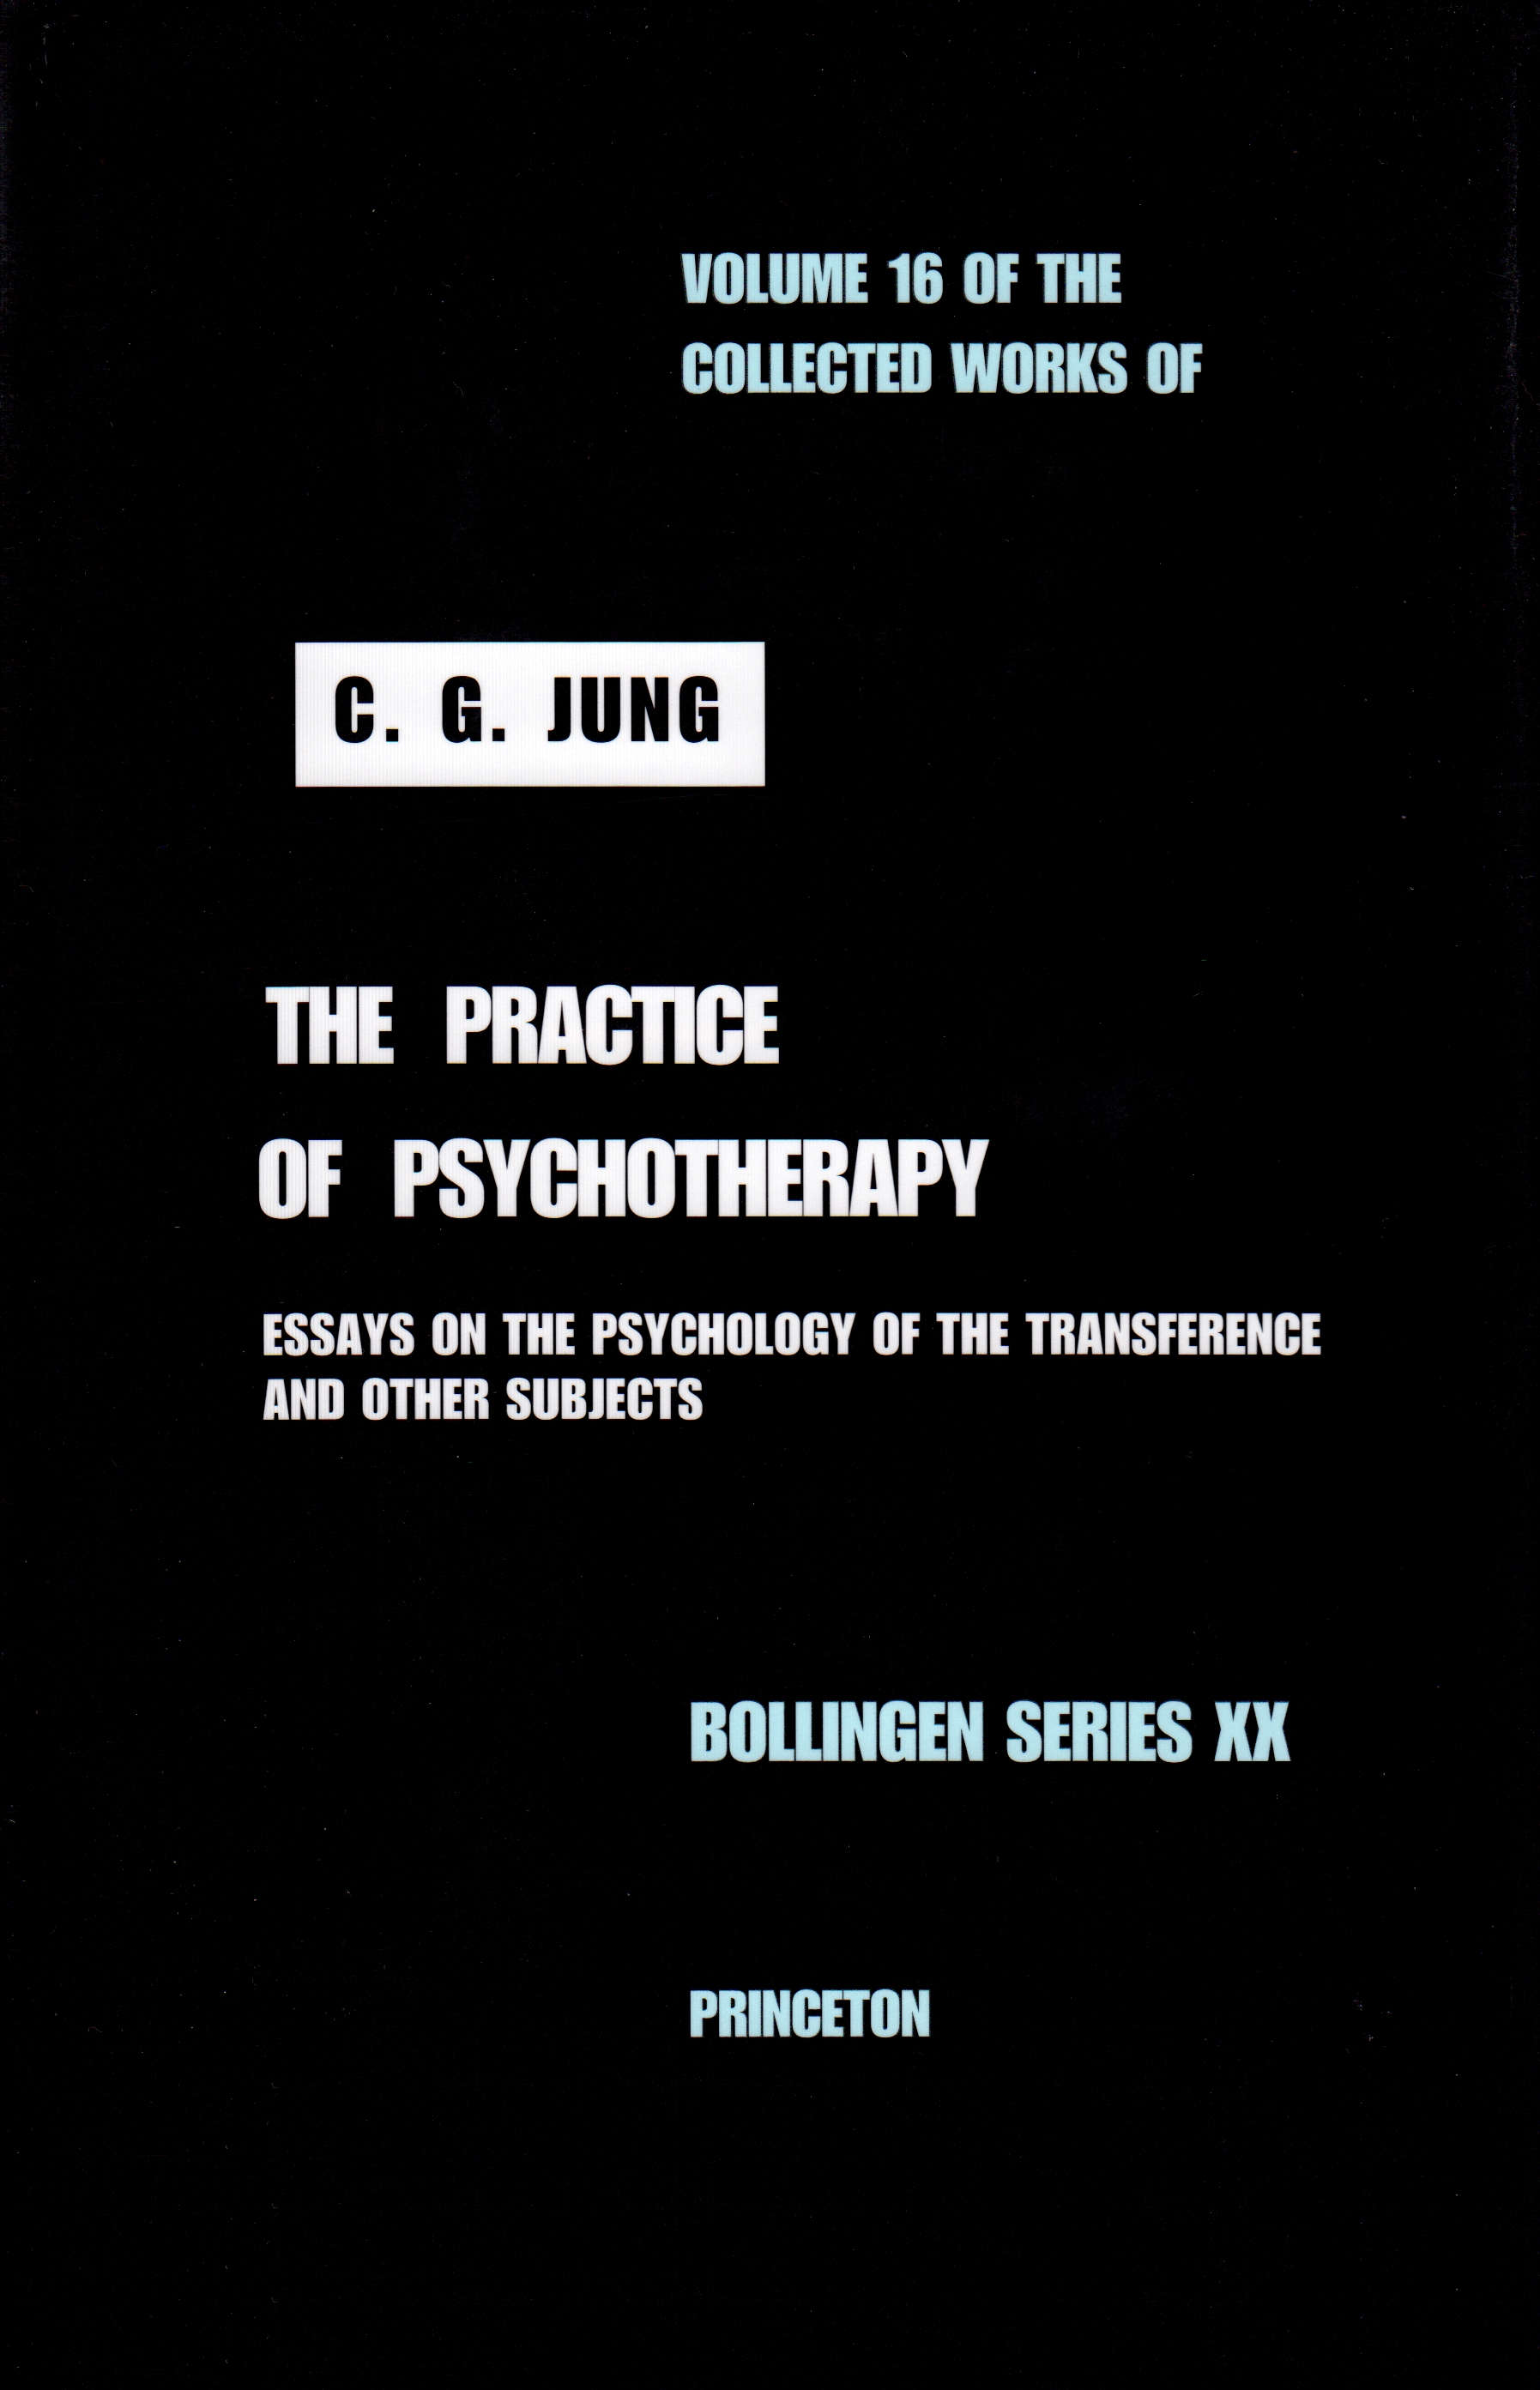 Practice of Psychotherapy Volume 16 Collected Works of C.G Jung